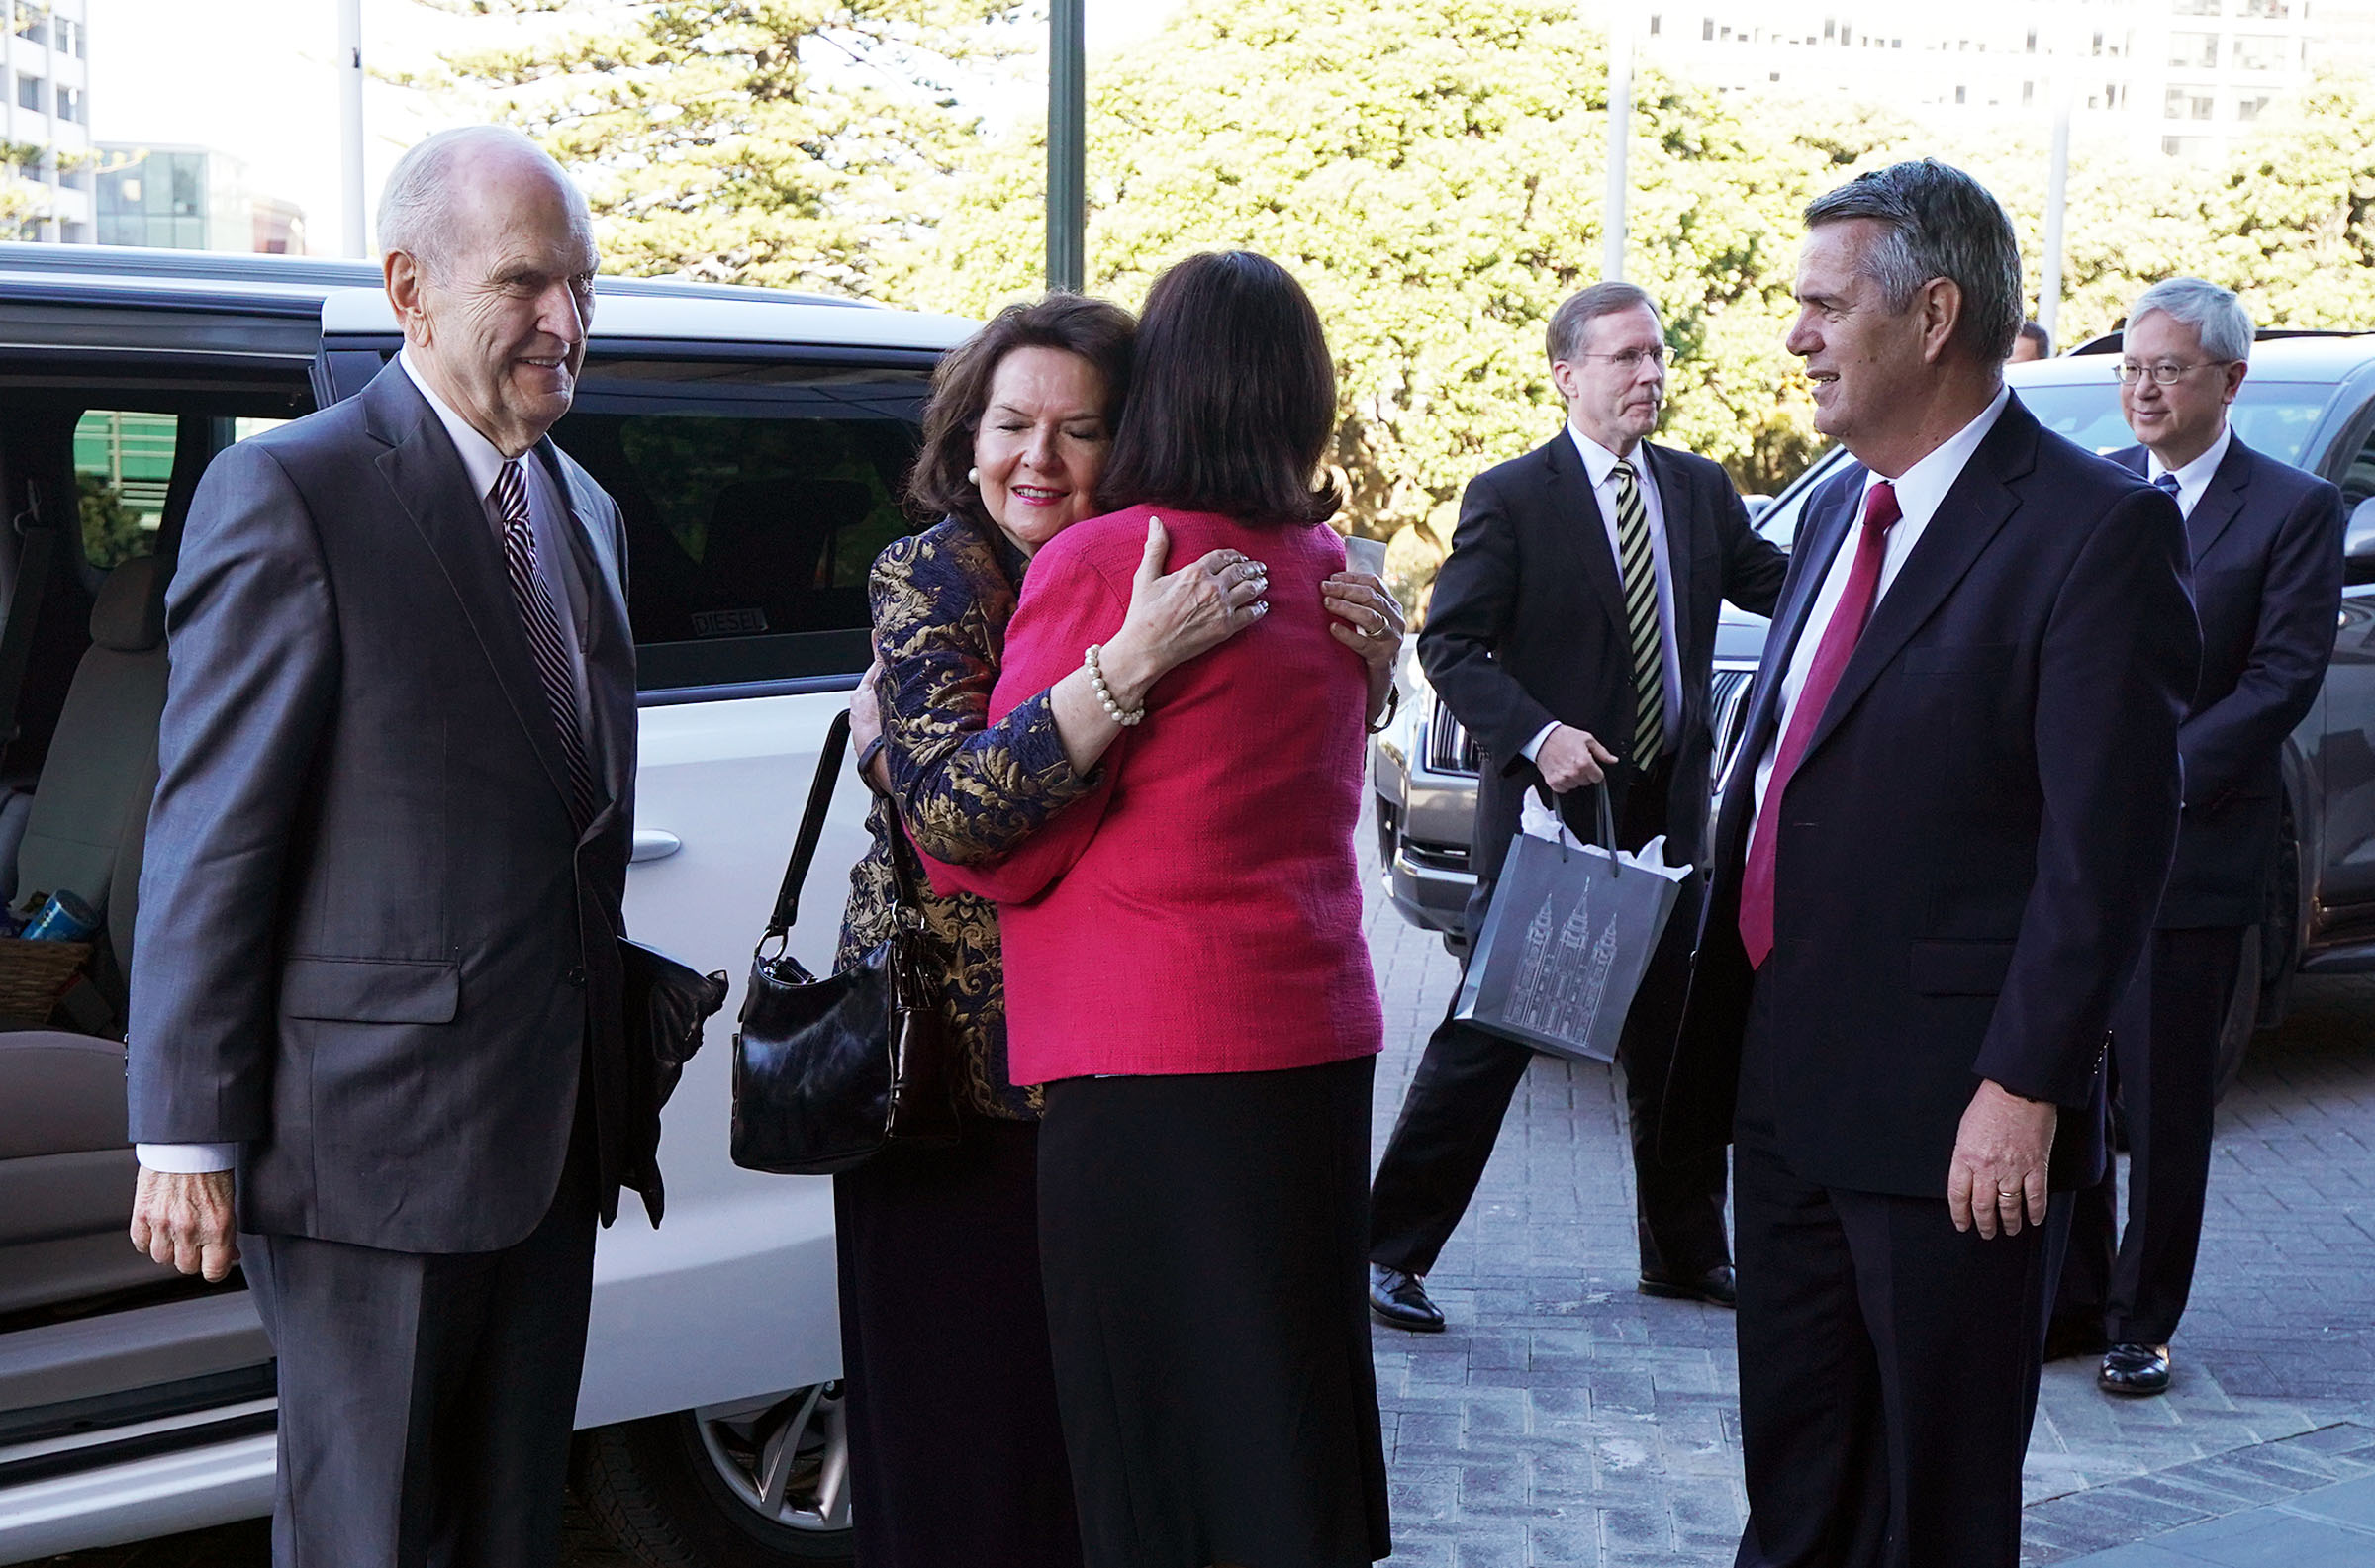 President Russell M. Nelson of The Church of Jesus Christ of Latter-day Saints and his wife, Sister Wendy Nelson, are greeted by Elder Ian S. Ardern, General Authority Seventy and member of the Pacific Area presidency, and his wife, Sister Paula Ardern, as they arrive to meet with New Zealand Prime Minister Jacinta Ardern — Elder Ardern's niece — in Wellington on Monday, May 20, 2019.